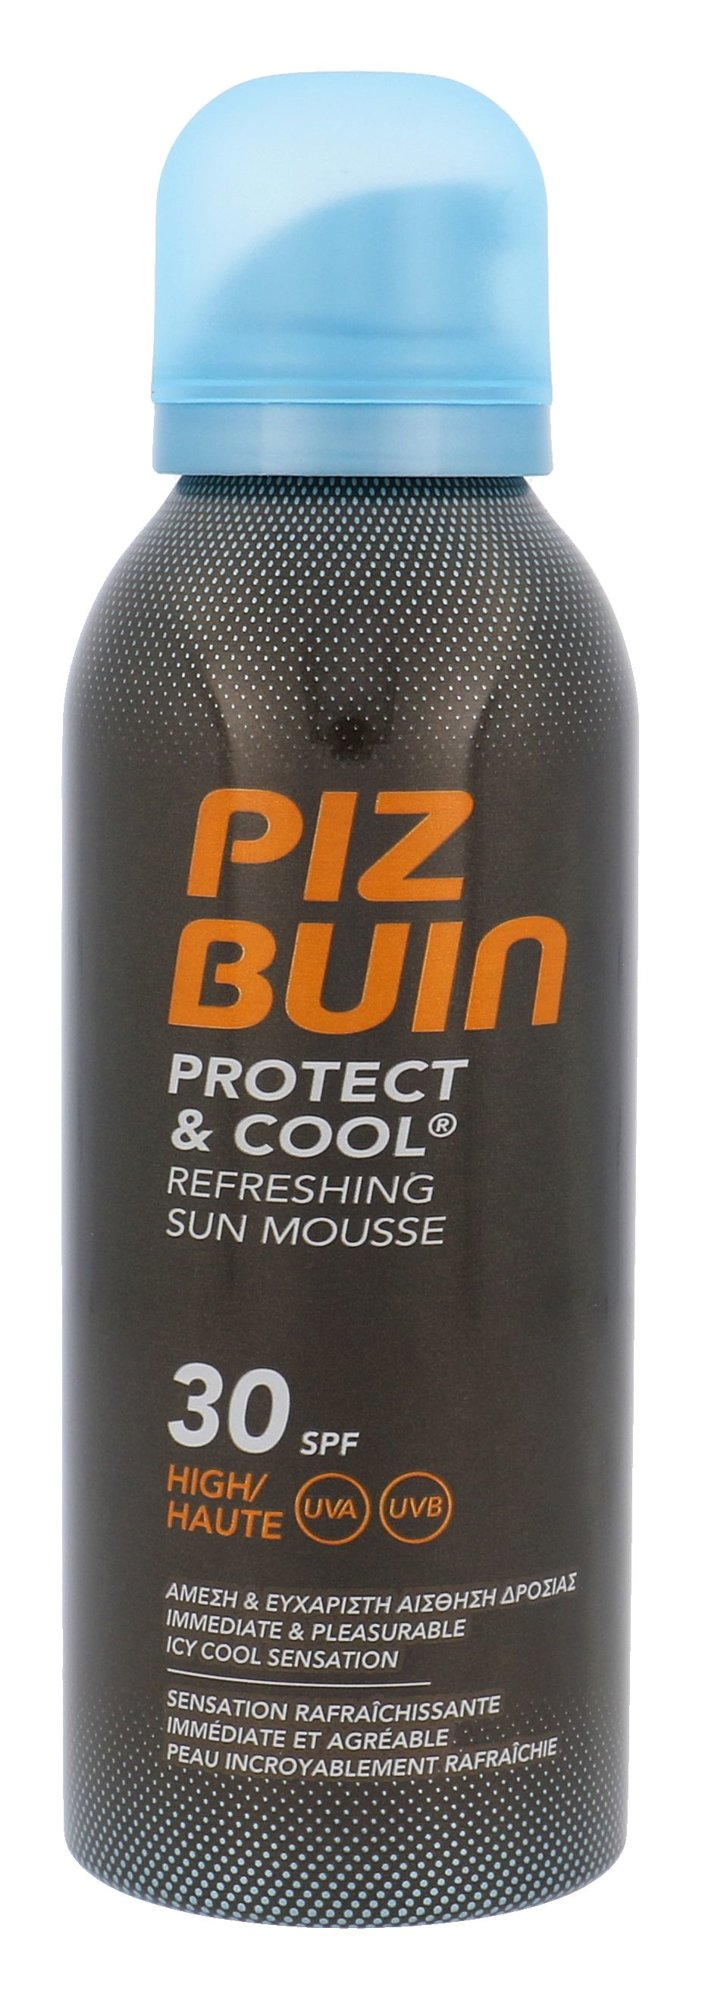 PIZ BUIN Protect & Cool Cosmetic 150ml